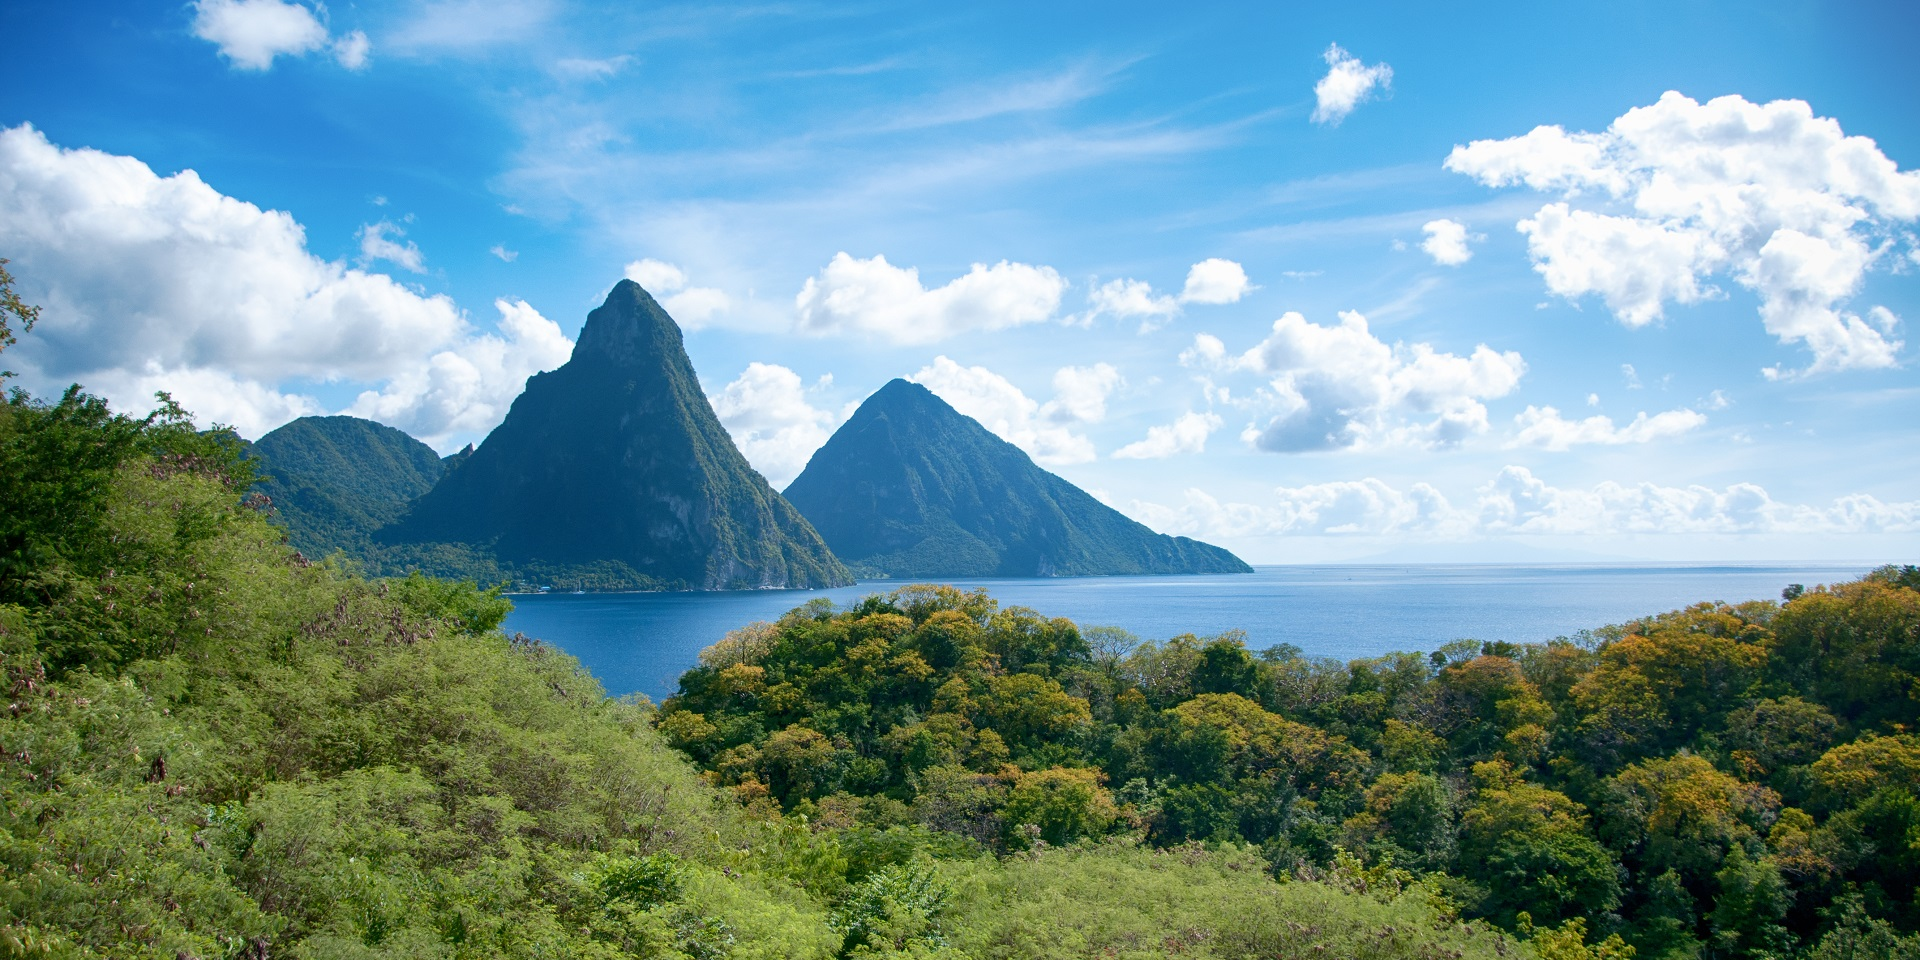 St lucia weather met office - Met office mountain forecast ...